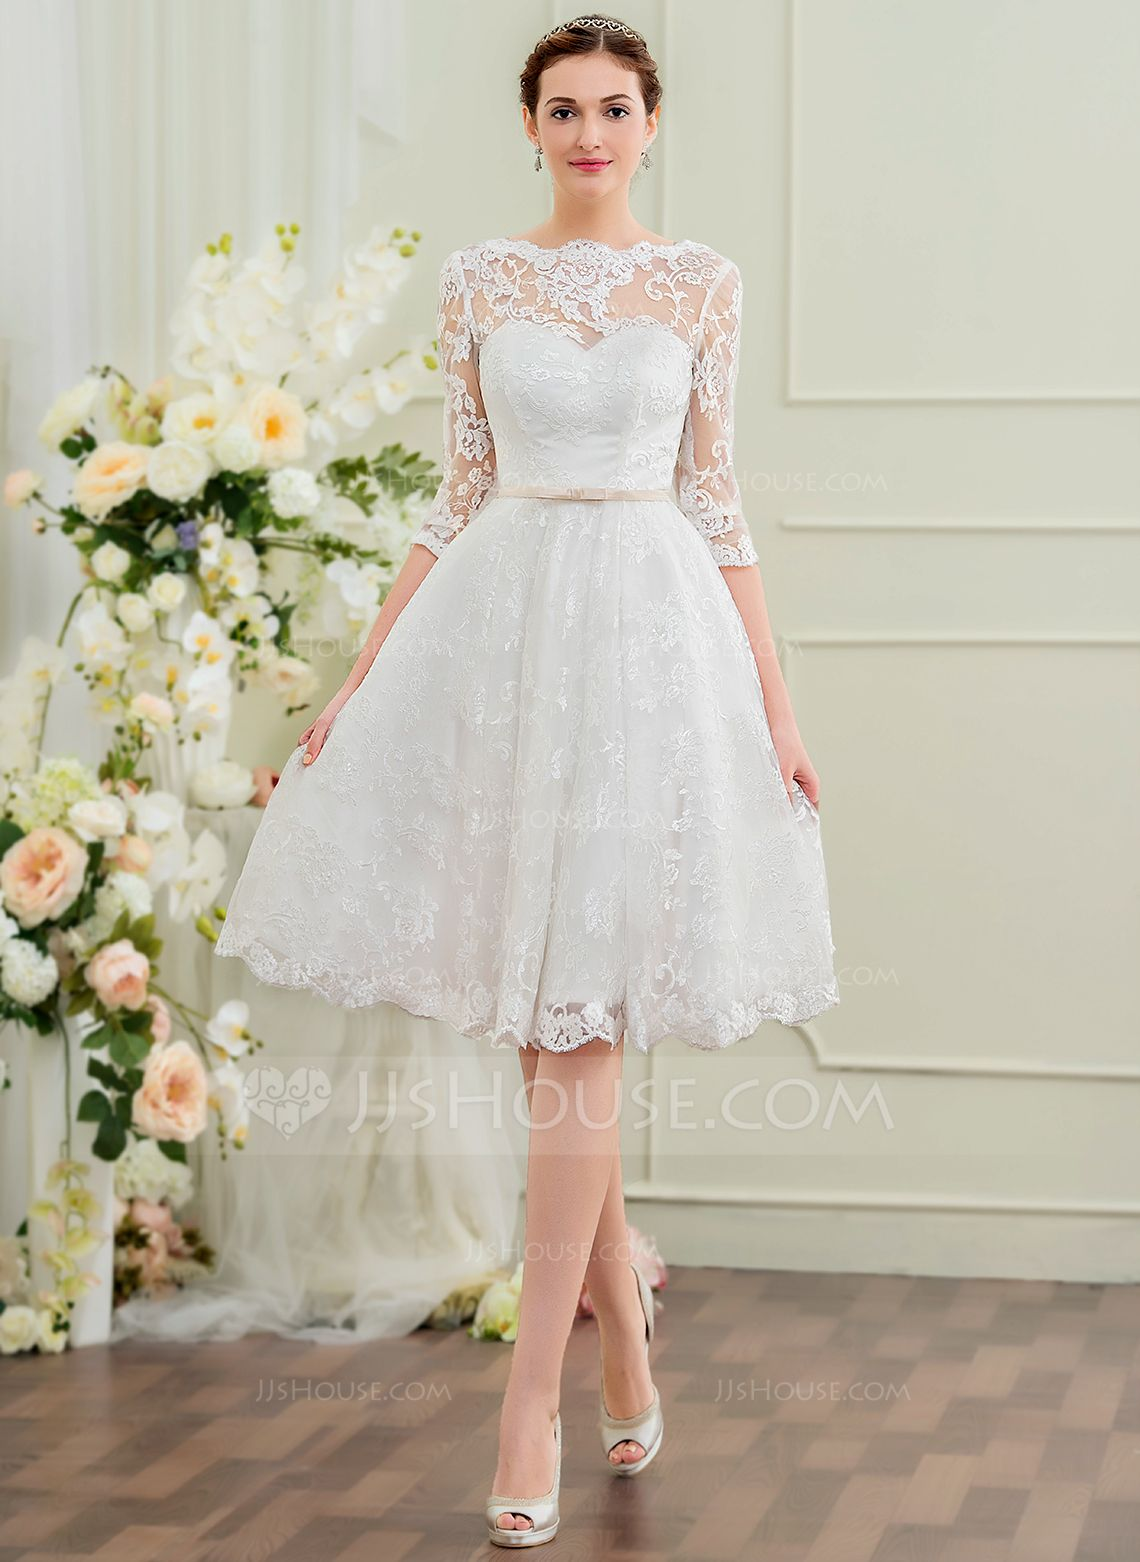 Us 214 00 A Line Illusion Knee Length Lace Wedding Dress With Bow S Jj S House Knee Length Wedding Dress Civil Wedding Dresses Bow Wedding Dress [ 1562 x 1140 Pixel ]